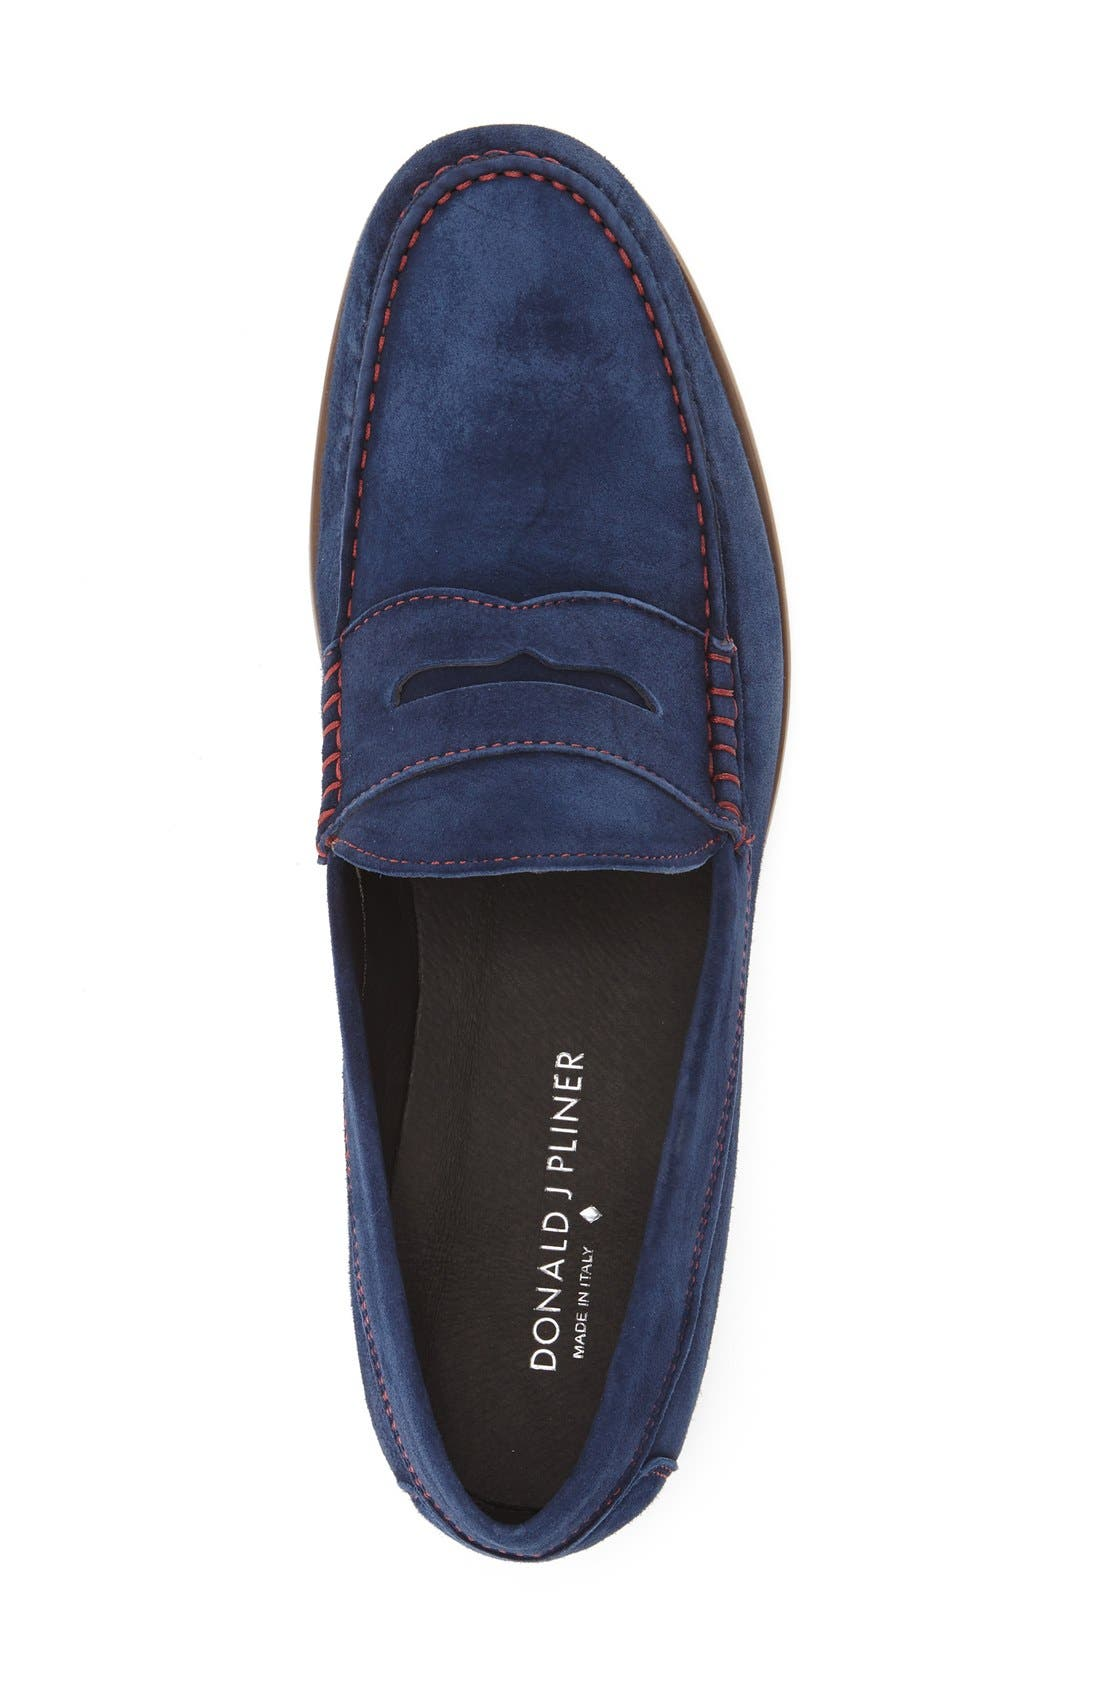 Nicola Penny Loafer,                             Alternate thumbnail 29, color,